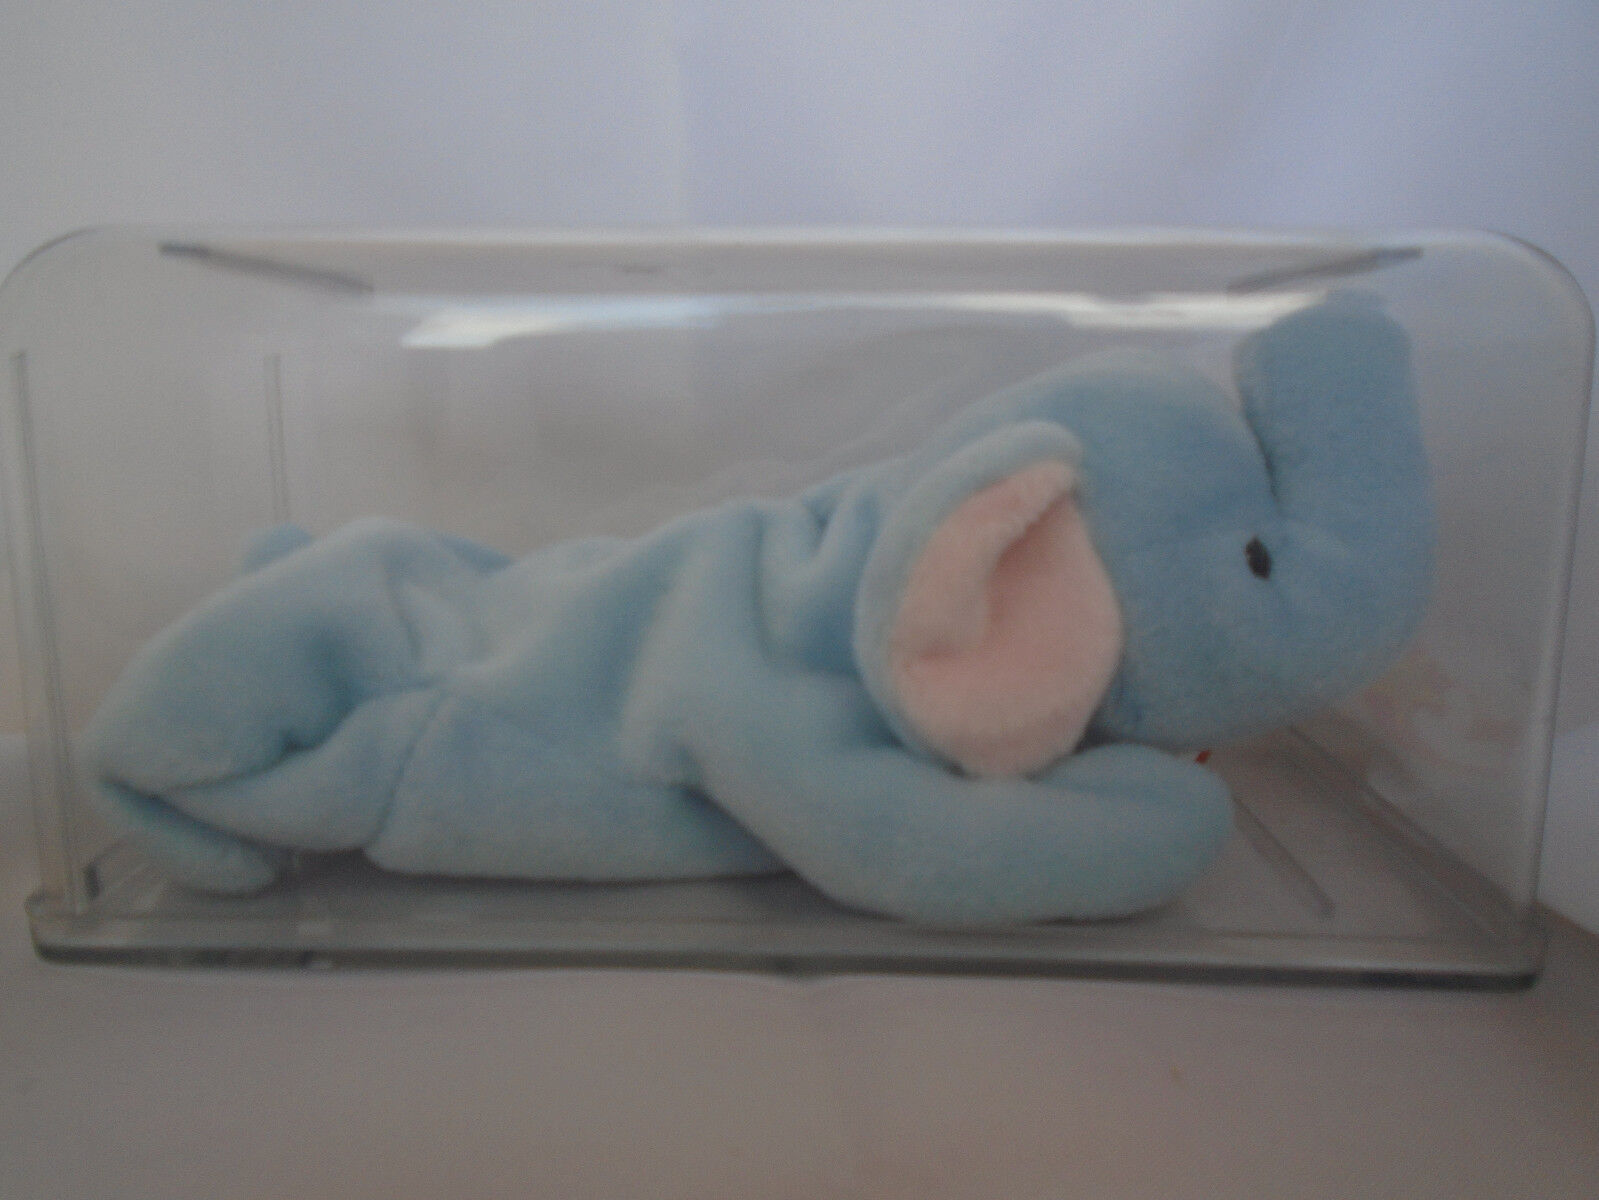 1995 TY Beanie Babies Light blueee Peanut Elephant